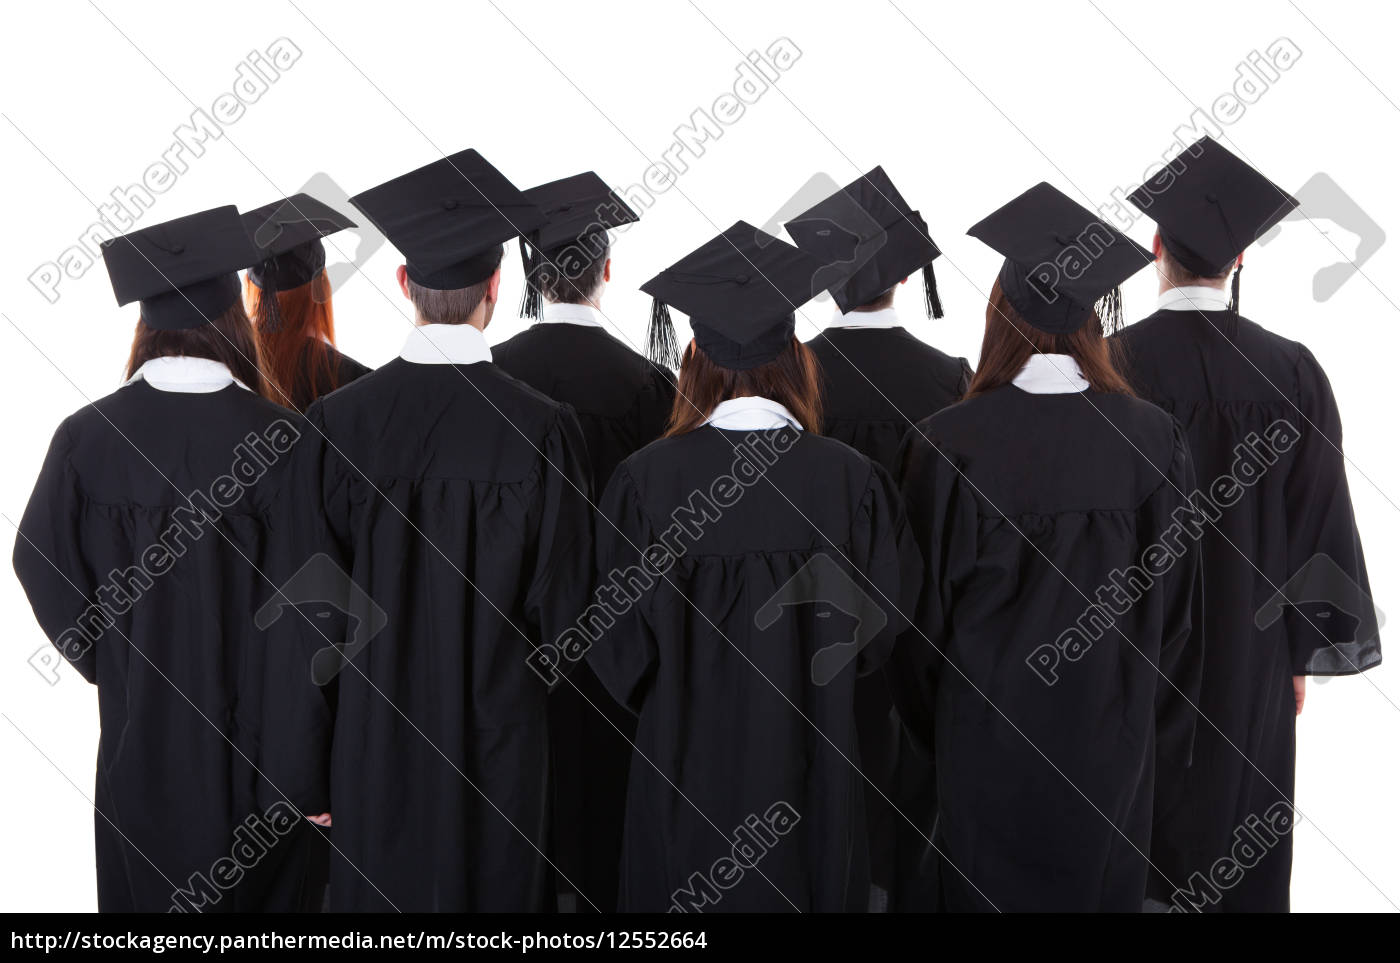 large, group, of, students, graduating - 12552664